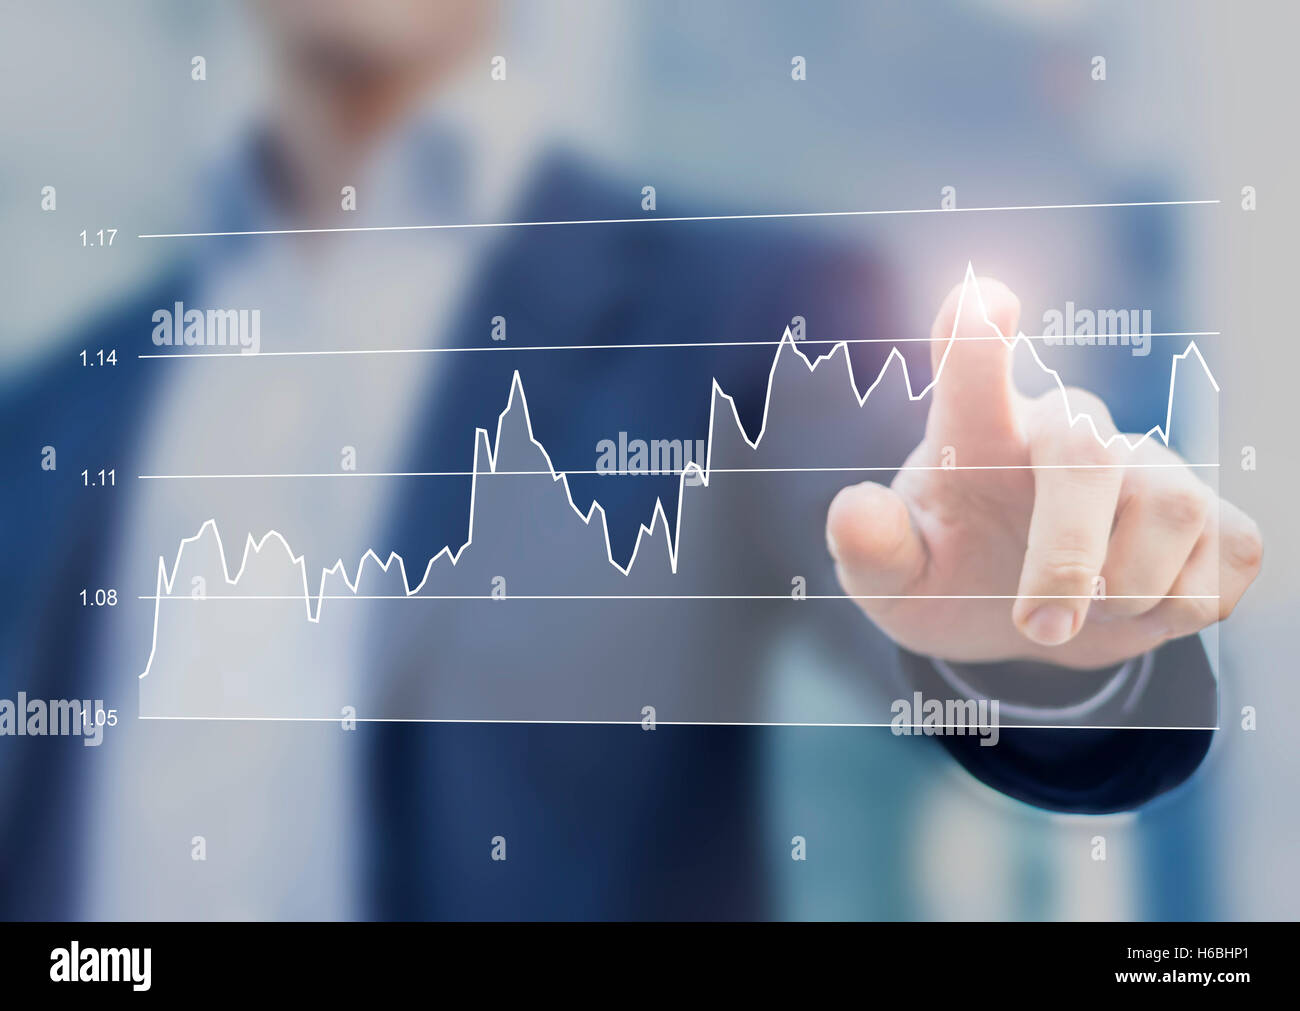 sales performance management stock photos  u0026 sales